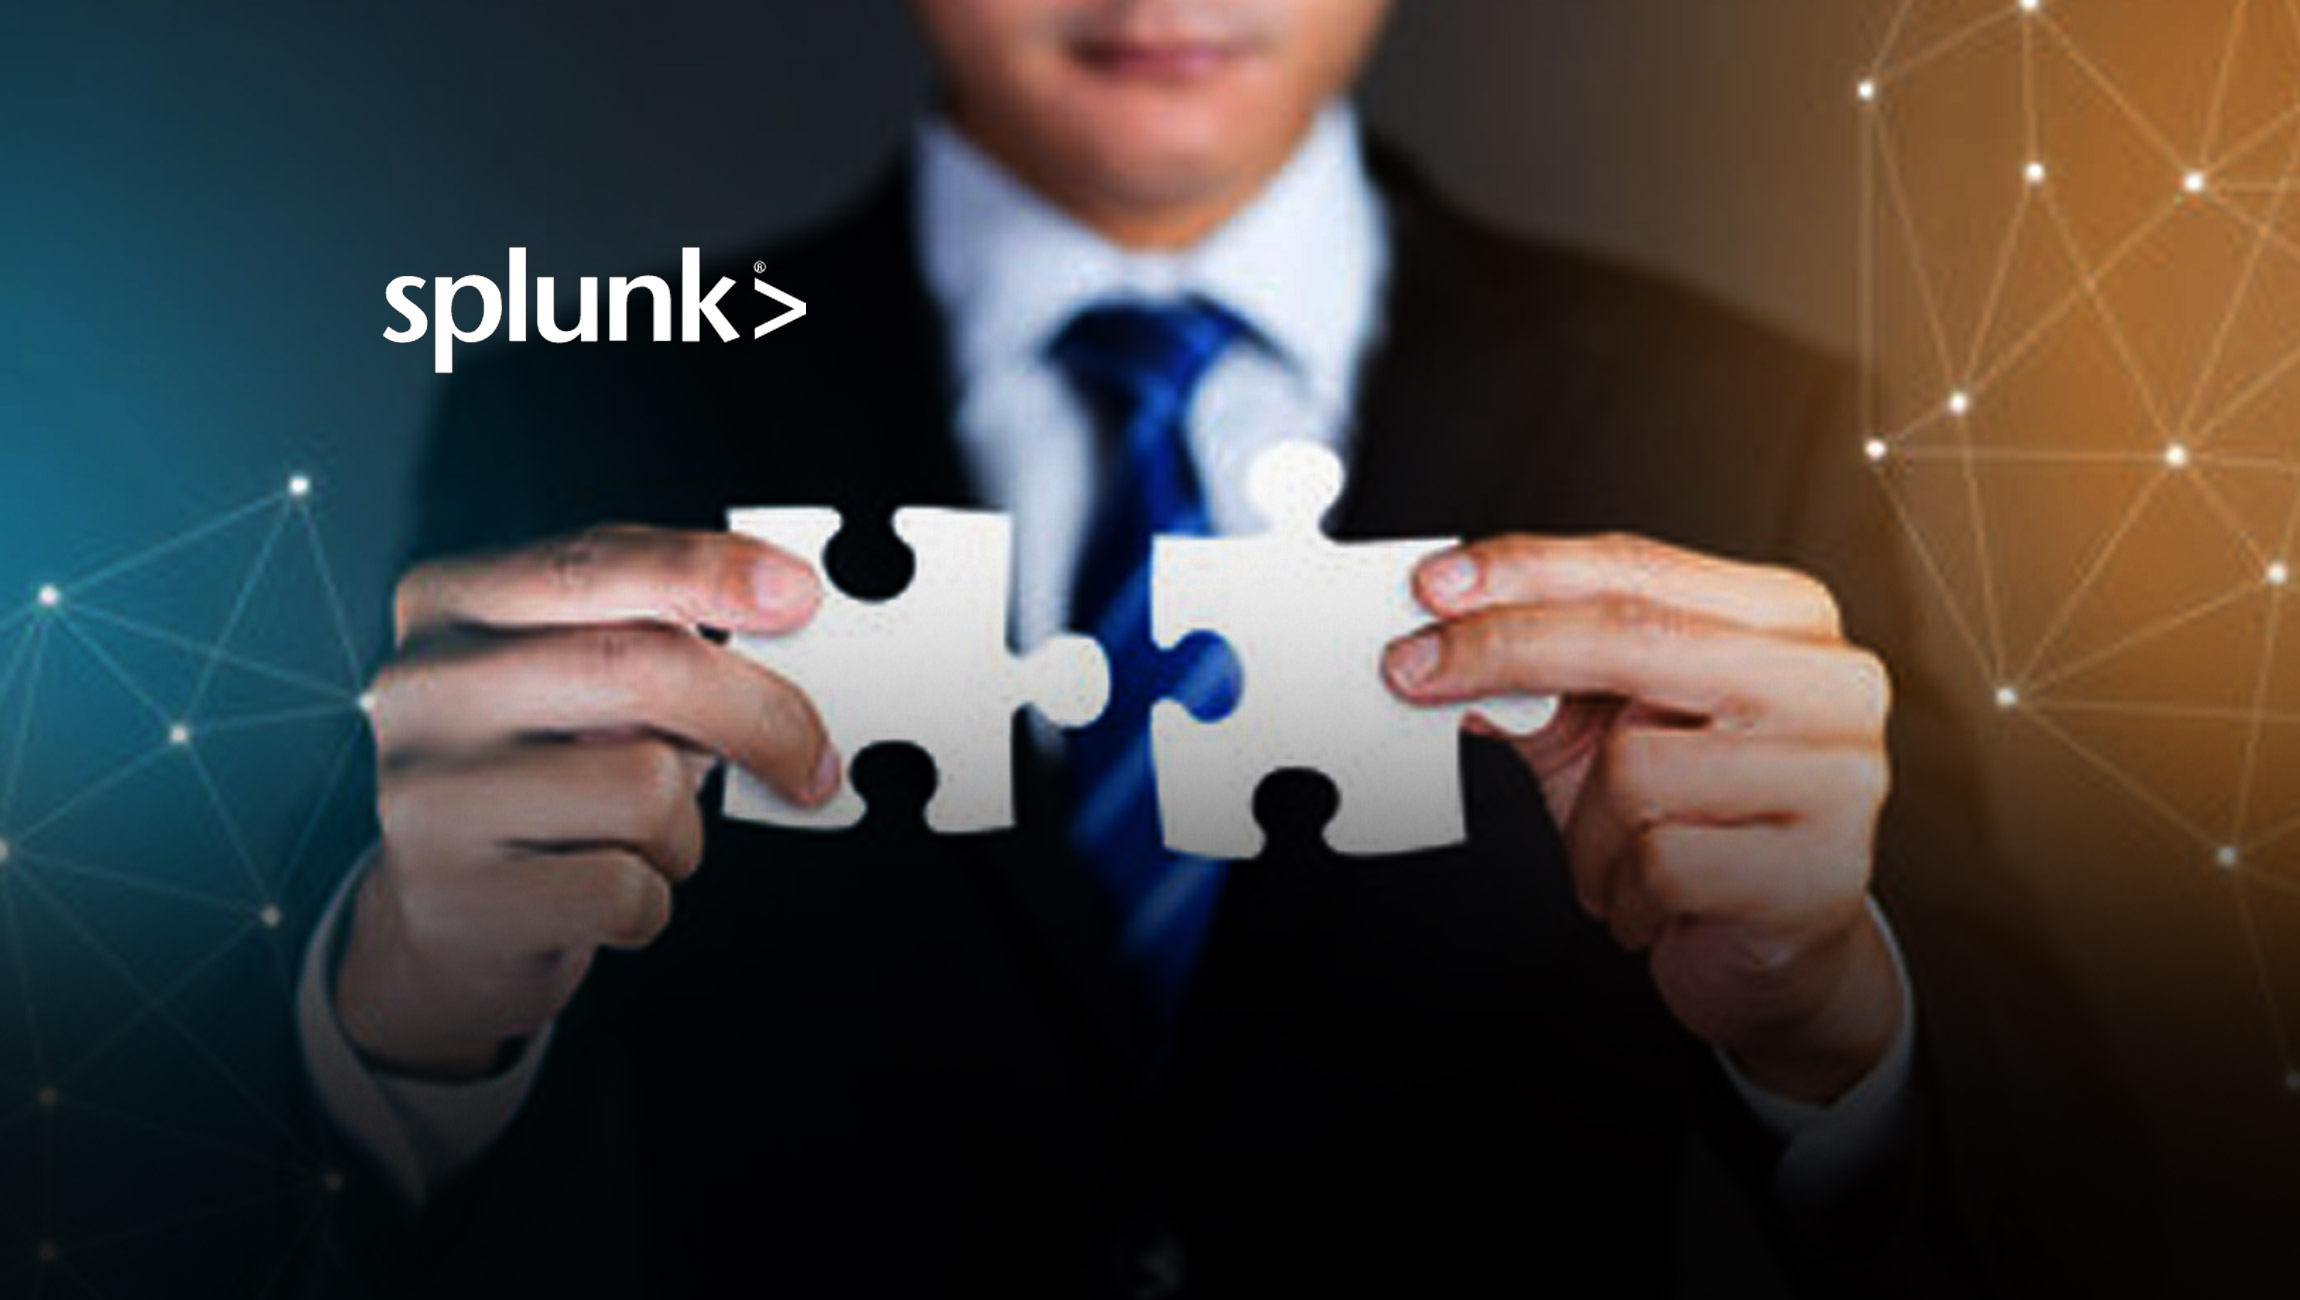 Splunk-to-Acquire-Network-Performance-Monitoring-Leader-Flowmill